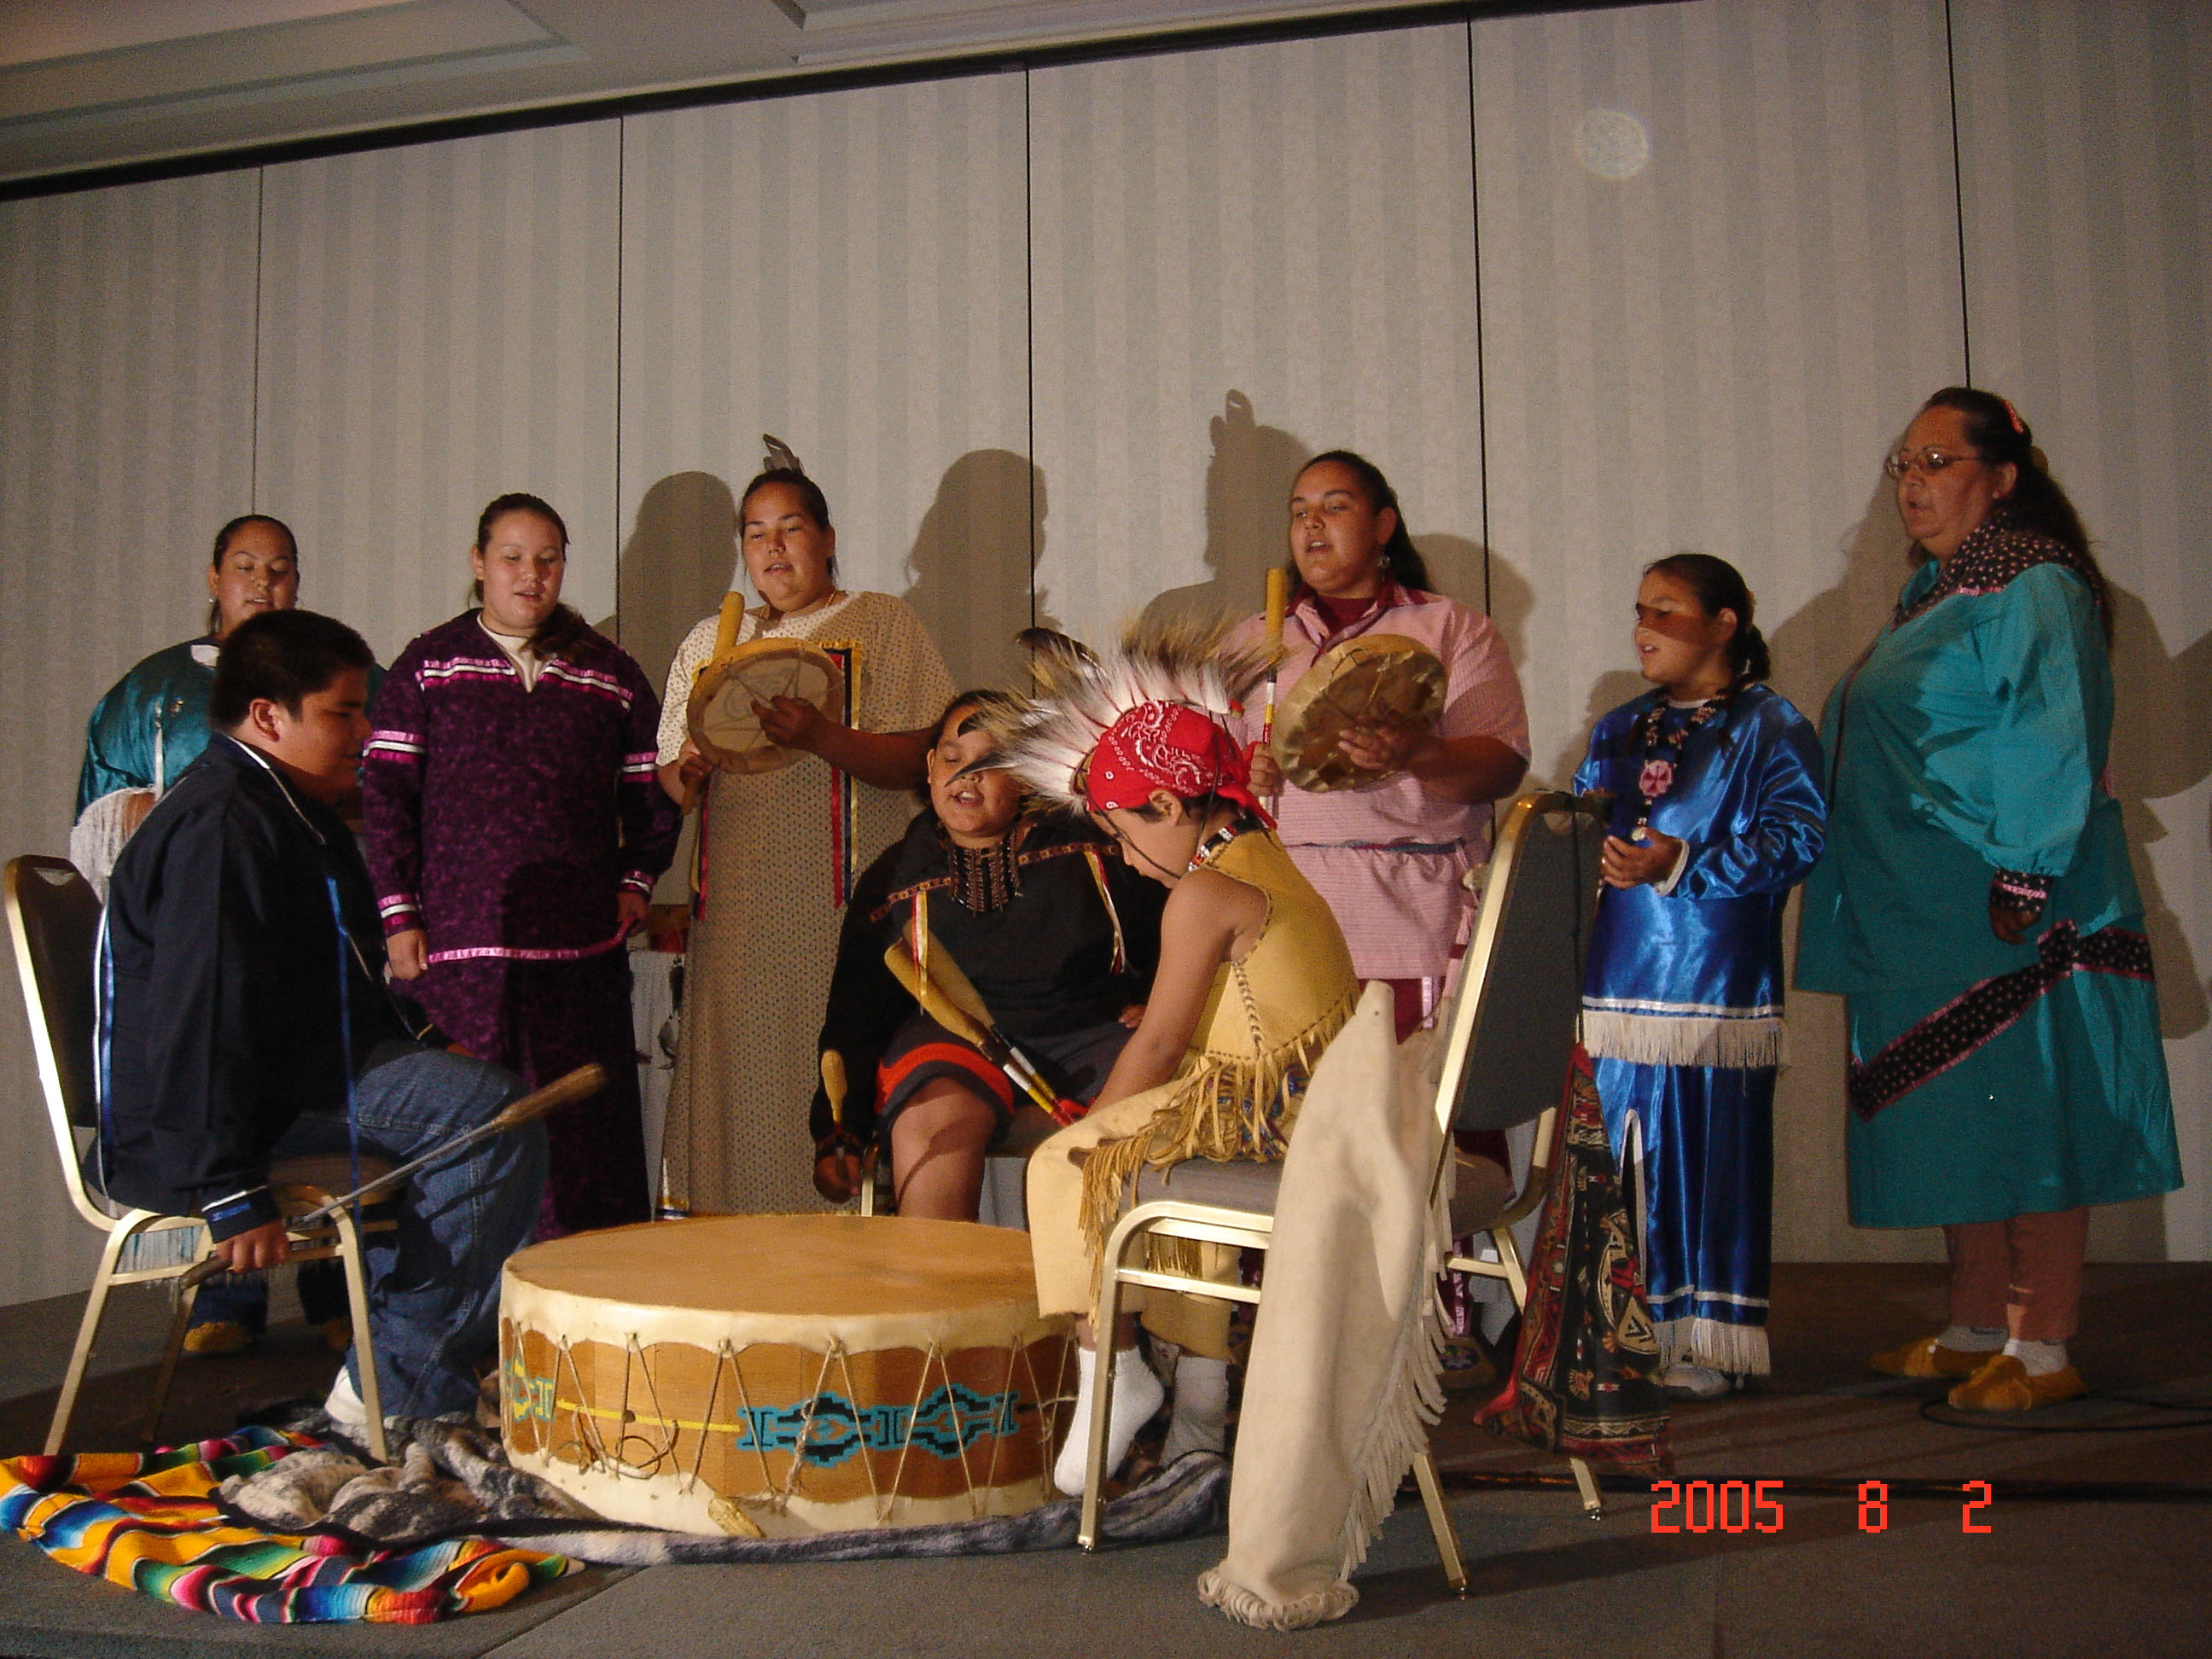 Maanjidowin feast Pictutures 015